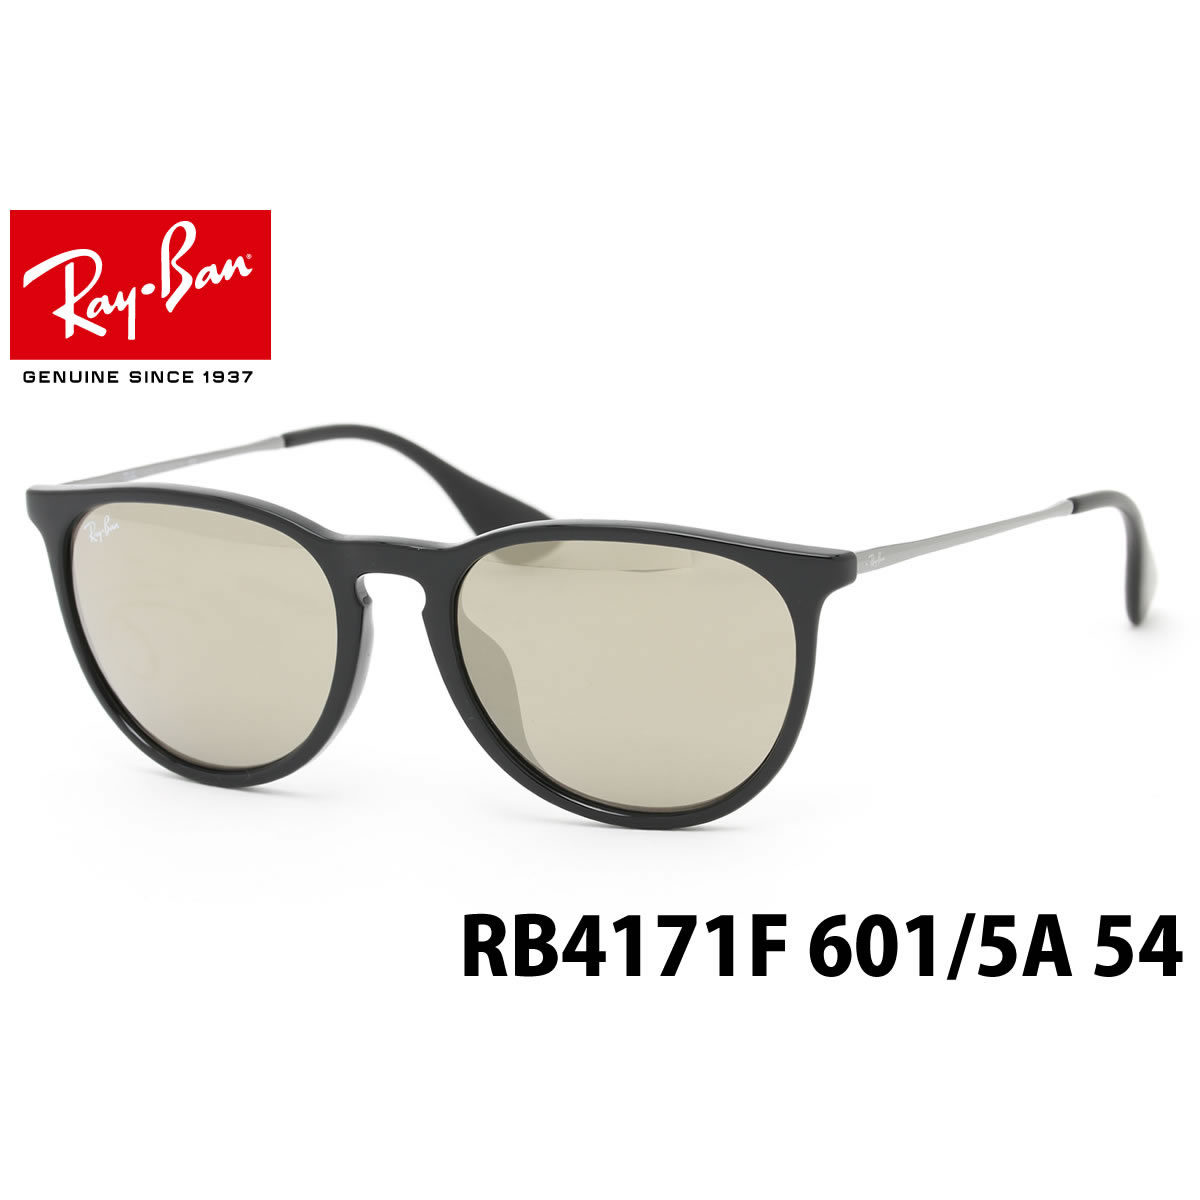 188c180e41c Optical Shop Thats  Ray-Ban Sunglasses RB4171F 601 5A 54size ERIKA FULL FIT  (for Asian) GENUINE NEW rayban ray ban